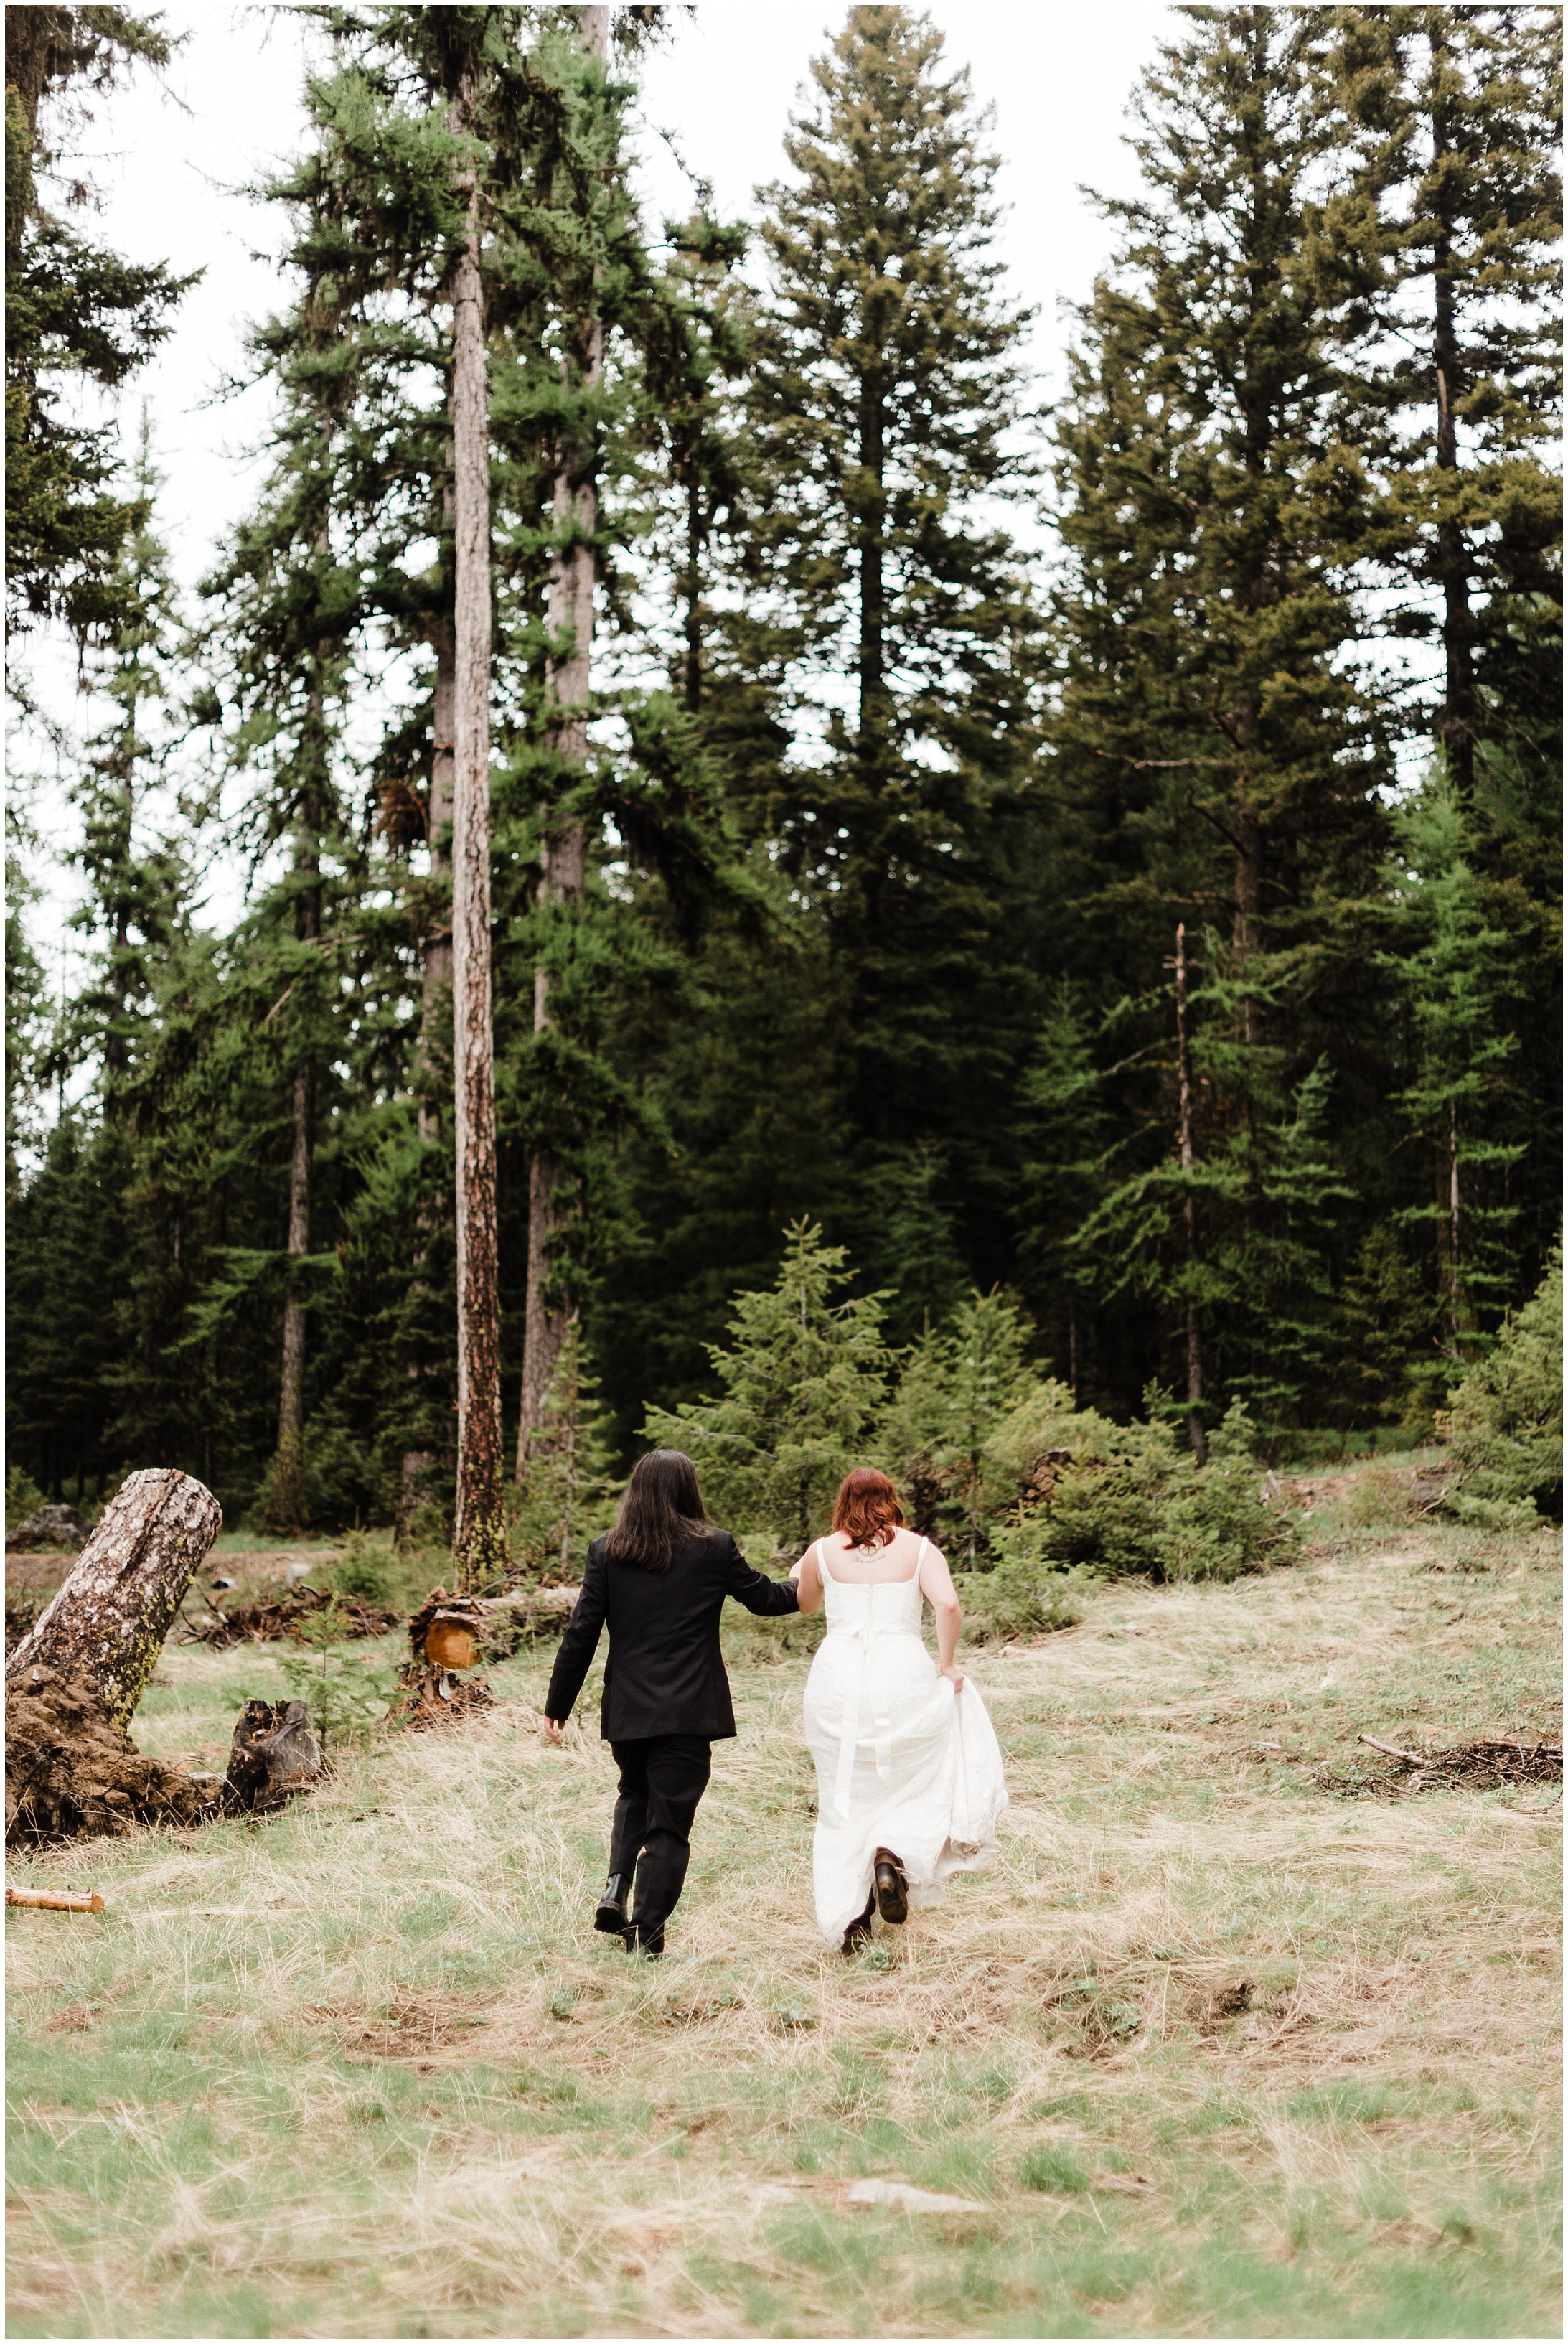 Bride and Groom running through a forest outside of Omak, WA by forthright photo